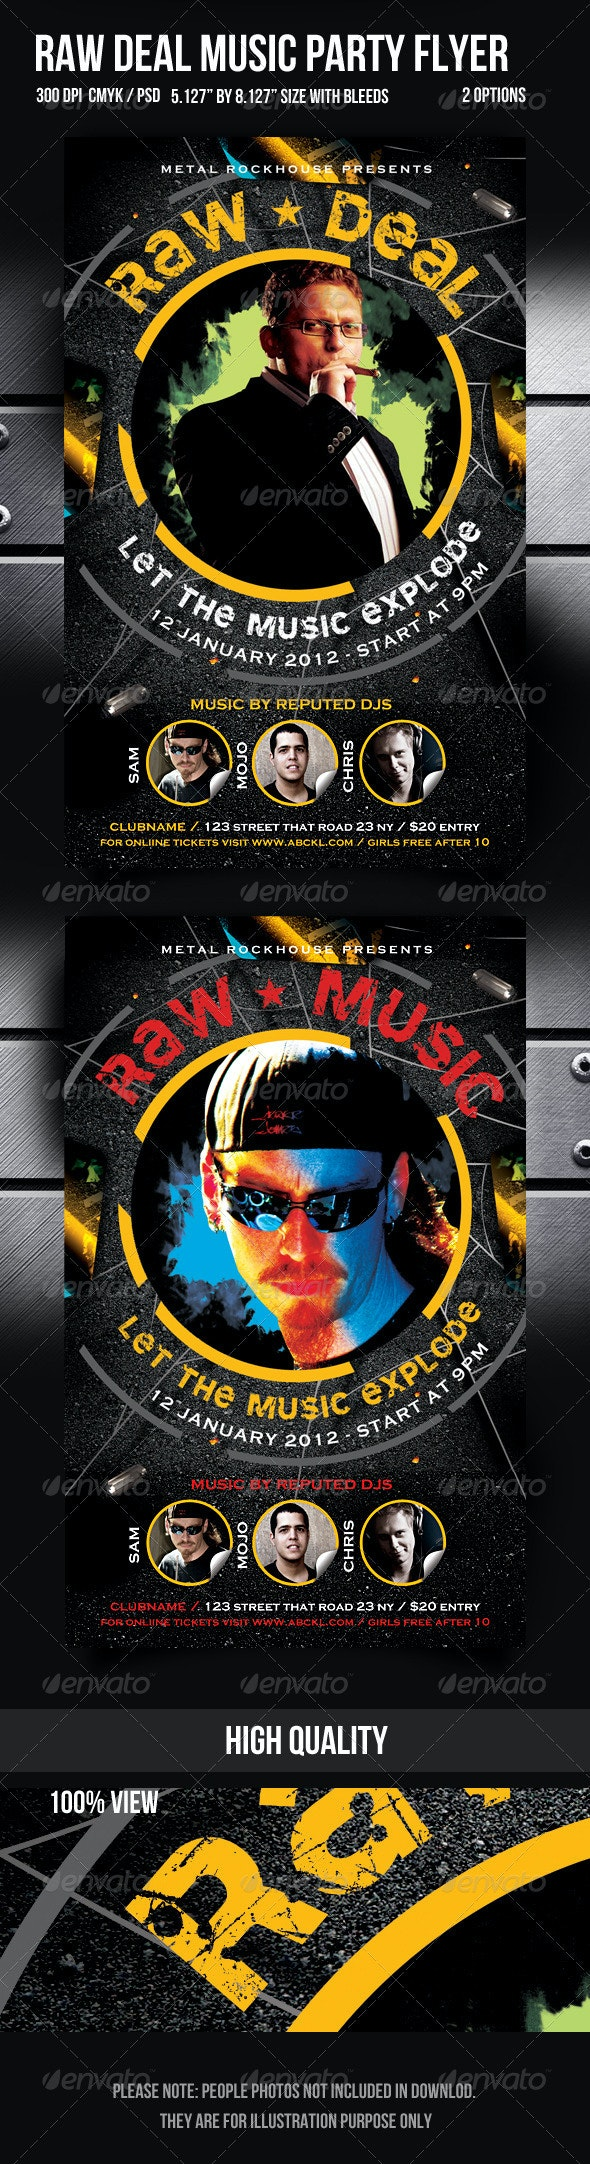 Raw Deal Music Party Flyer - Clubs & Parties Events